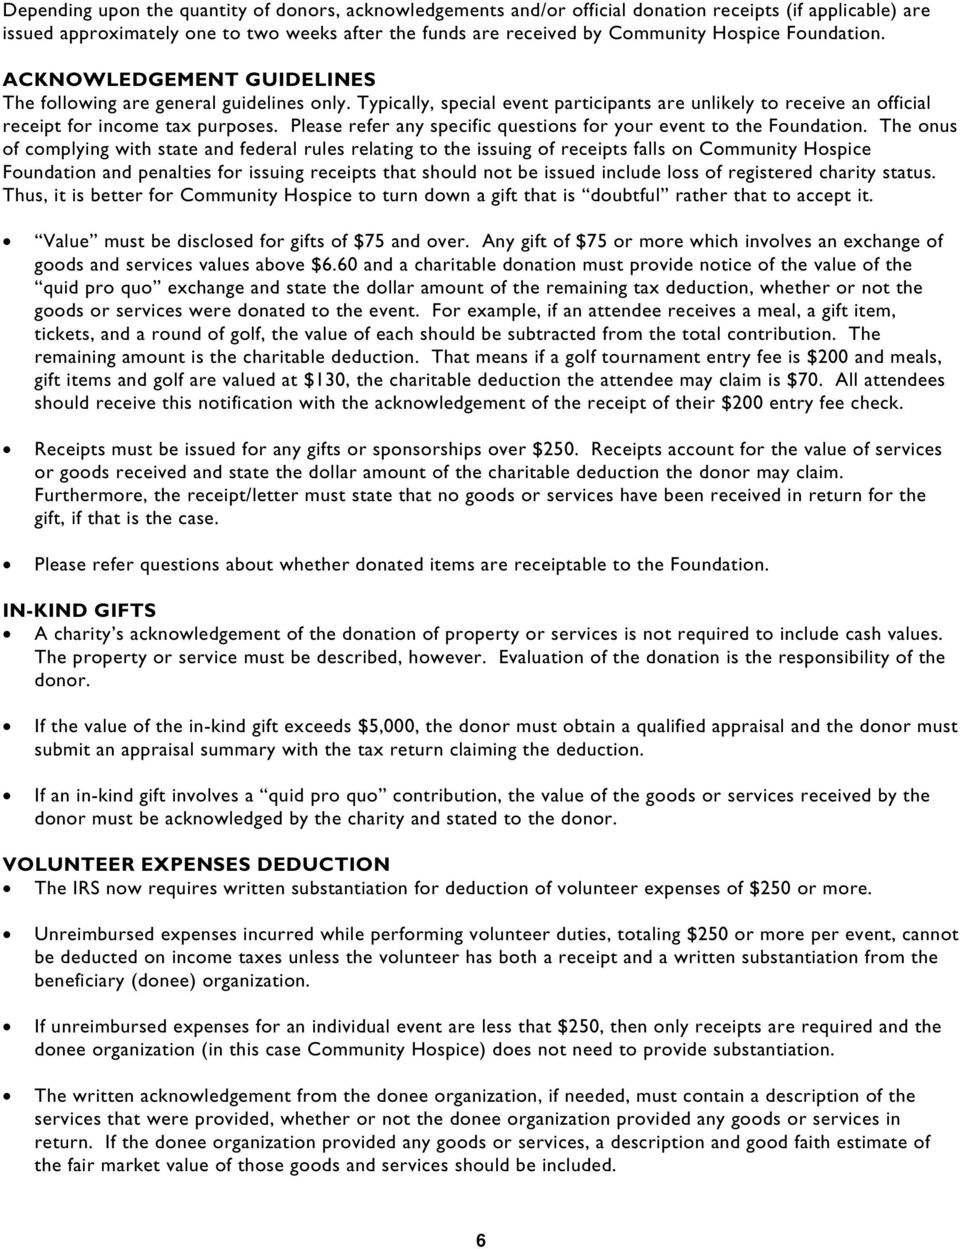 GUIDELINES FOR FUNDRAISING SPECIAL EVENTS - PDF